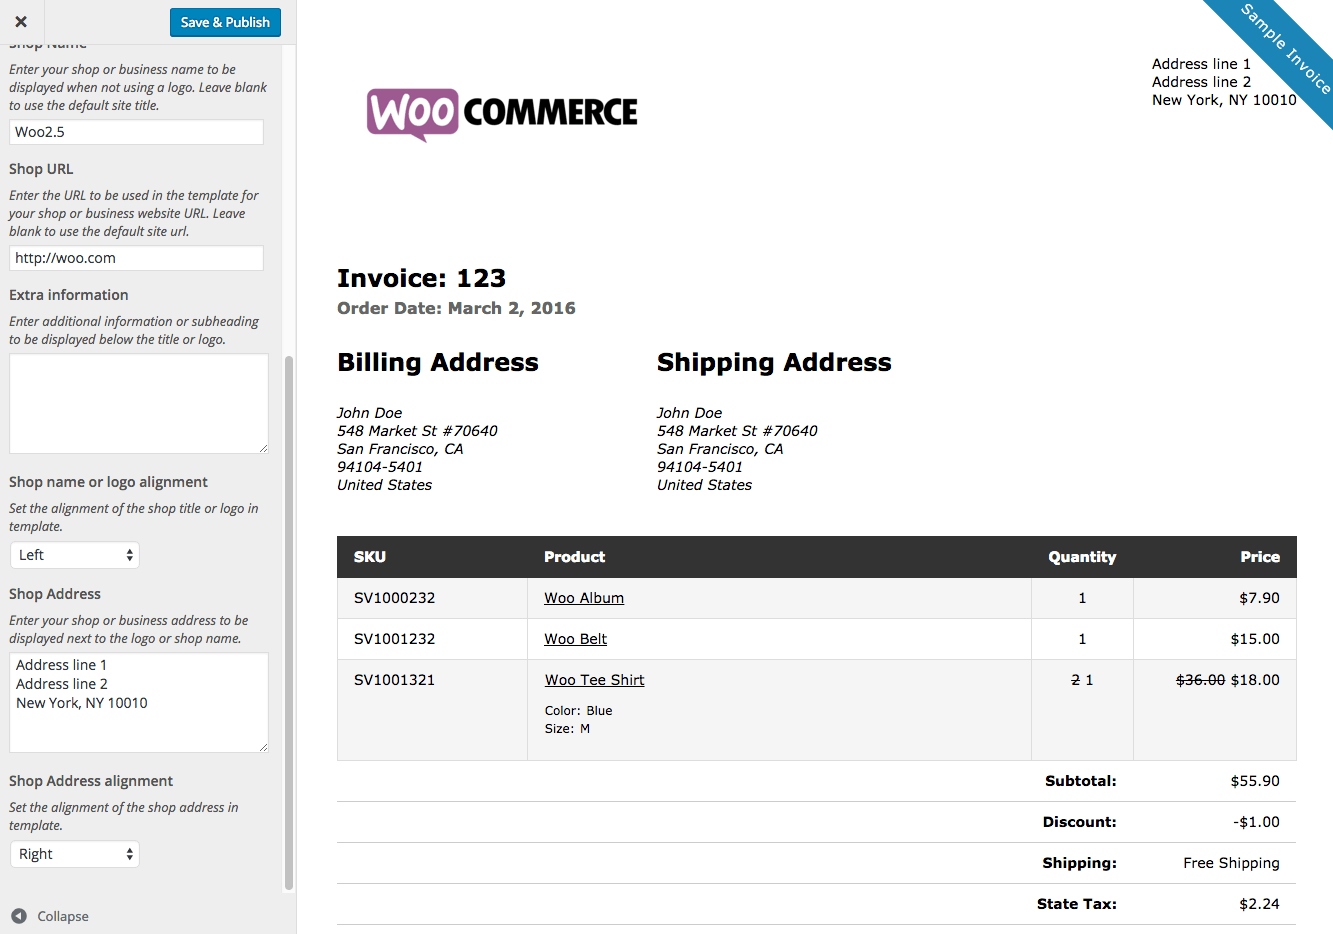 Ultrablogus  Outstanding Woocommerce Print Invoices Amp Packing Lists  Woocommerce Docs With Outstanding Woocommerce Print Invoices  Packing Lists Customizer With Divine Take Receipt Also Goods Receipt Note In Addition Ice Cream Receipt And Message Receipt Failed Verizon As Well As Apartment Rental Receipt Template Additionally Receipt Organization Software From Docswoocommercecom With Ultrablogus  Outstanding Woocommerce Print Invoices Amp Packing Lists  Woocommerce Docs With Divine Woocommerce Print Invoices  Packing Lists Customizer And Outstanding Take Receipt Also Goods Receipt Note In Addition Ice Cream Receipt From Docswoocommercecom